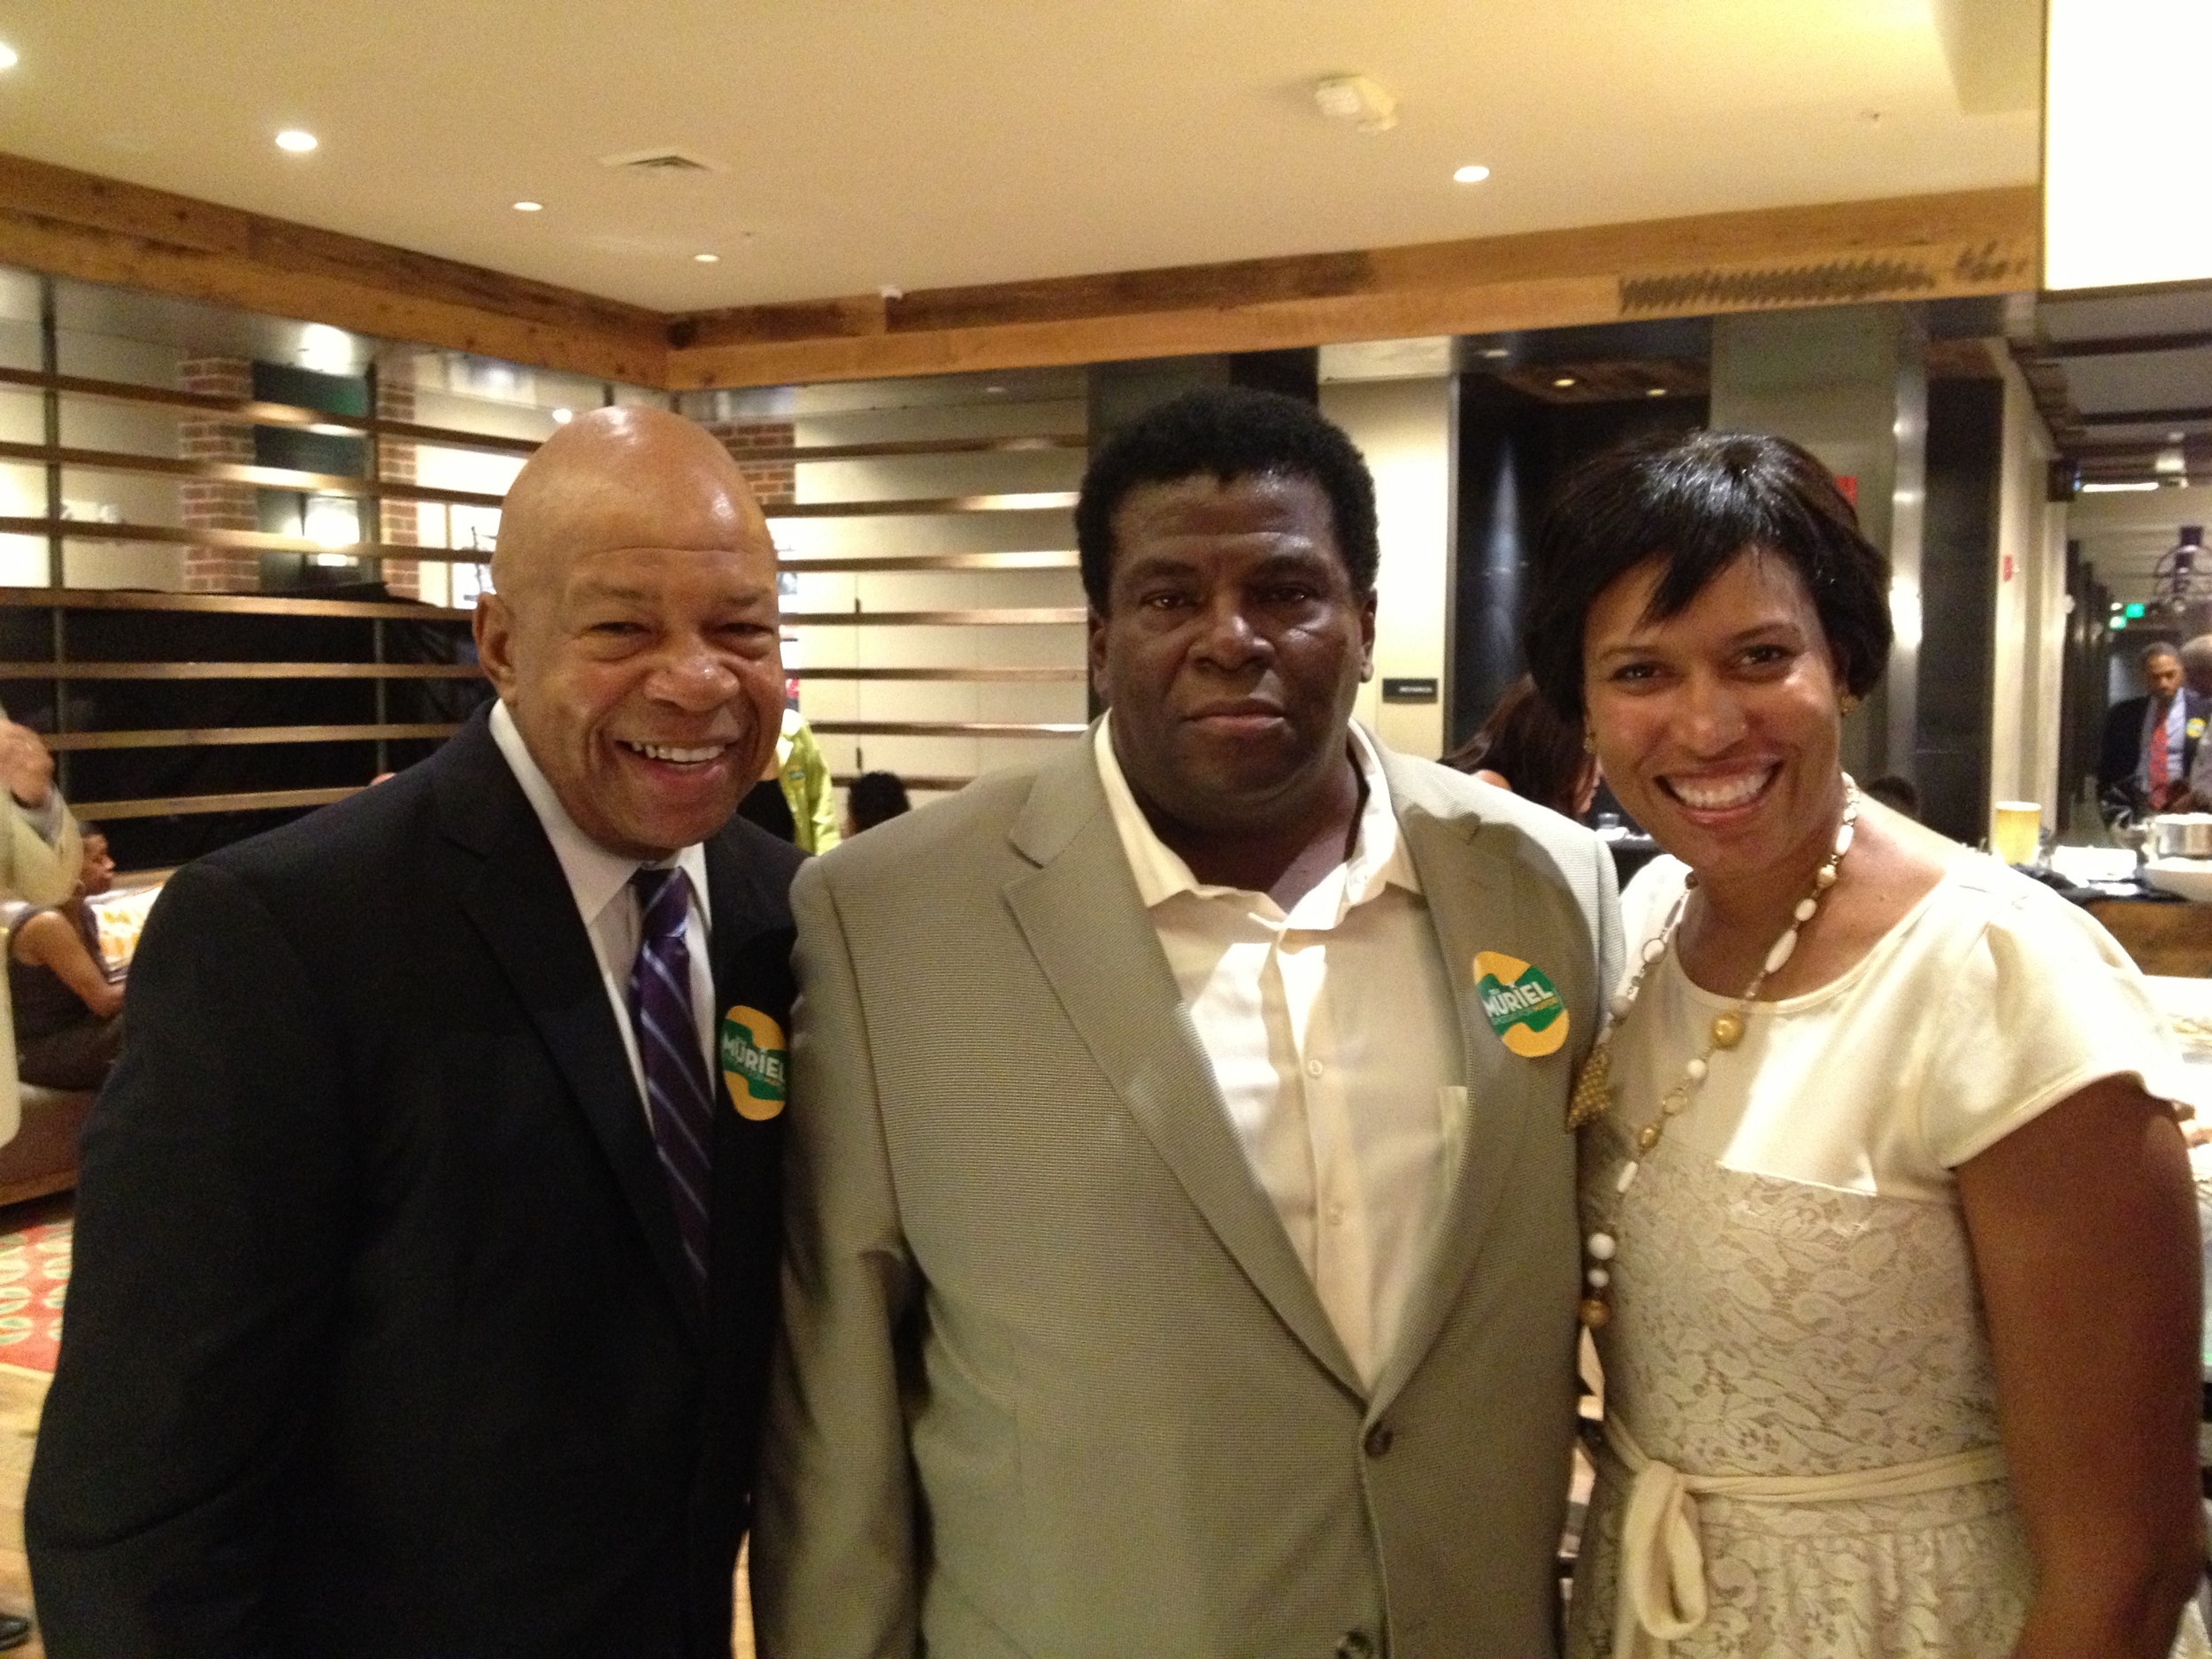 Maryland Congressman Elijah Cummings, Adrian Harpool and Newly Elected DC Mayor Muriel Bowser